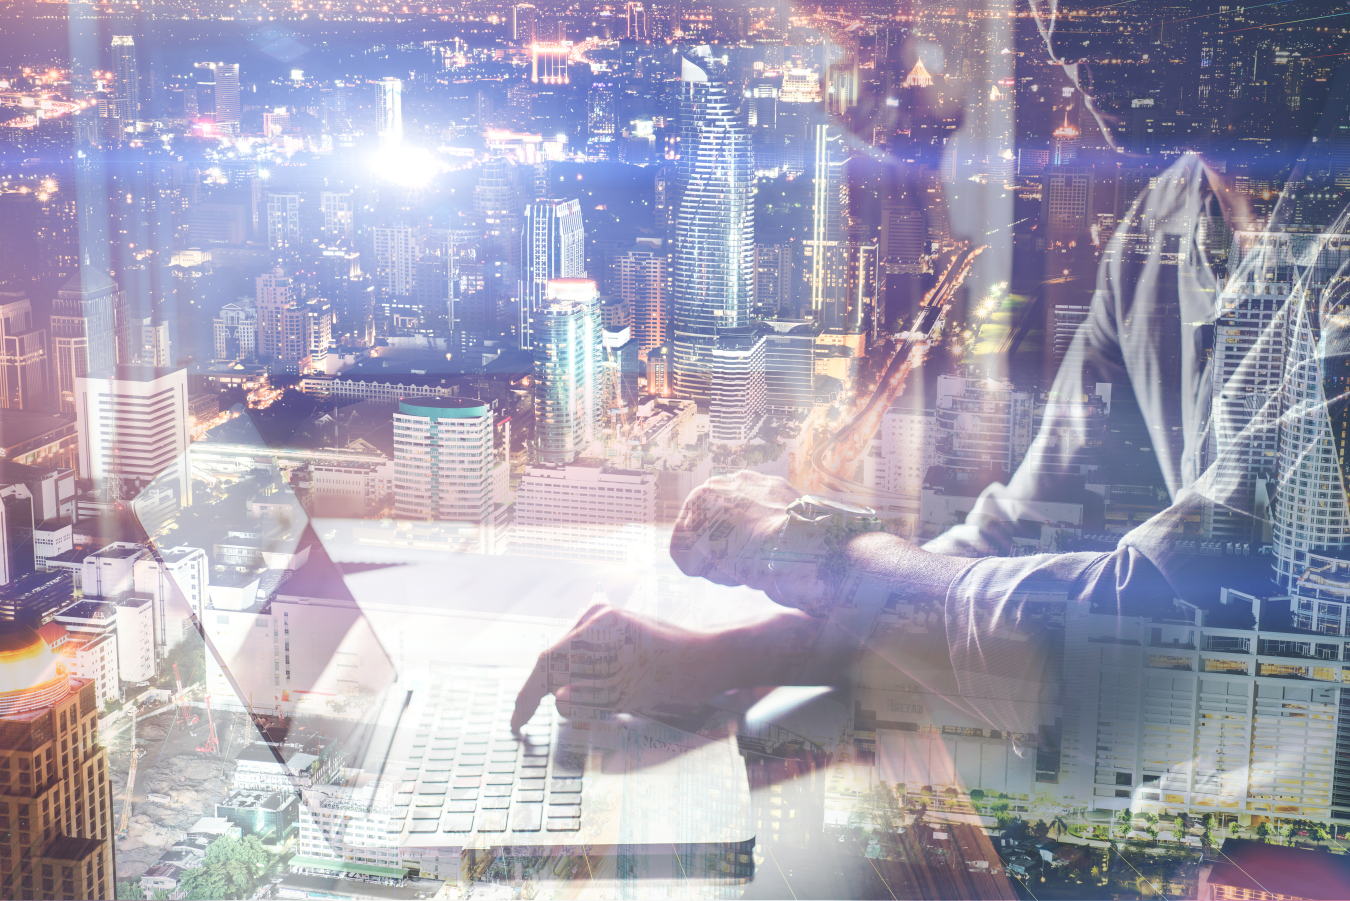 Leveraging Remote Infrastructure Monitoring & Management for Modern IT Assets